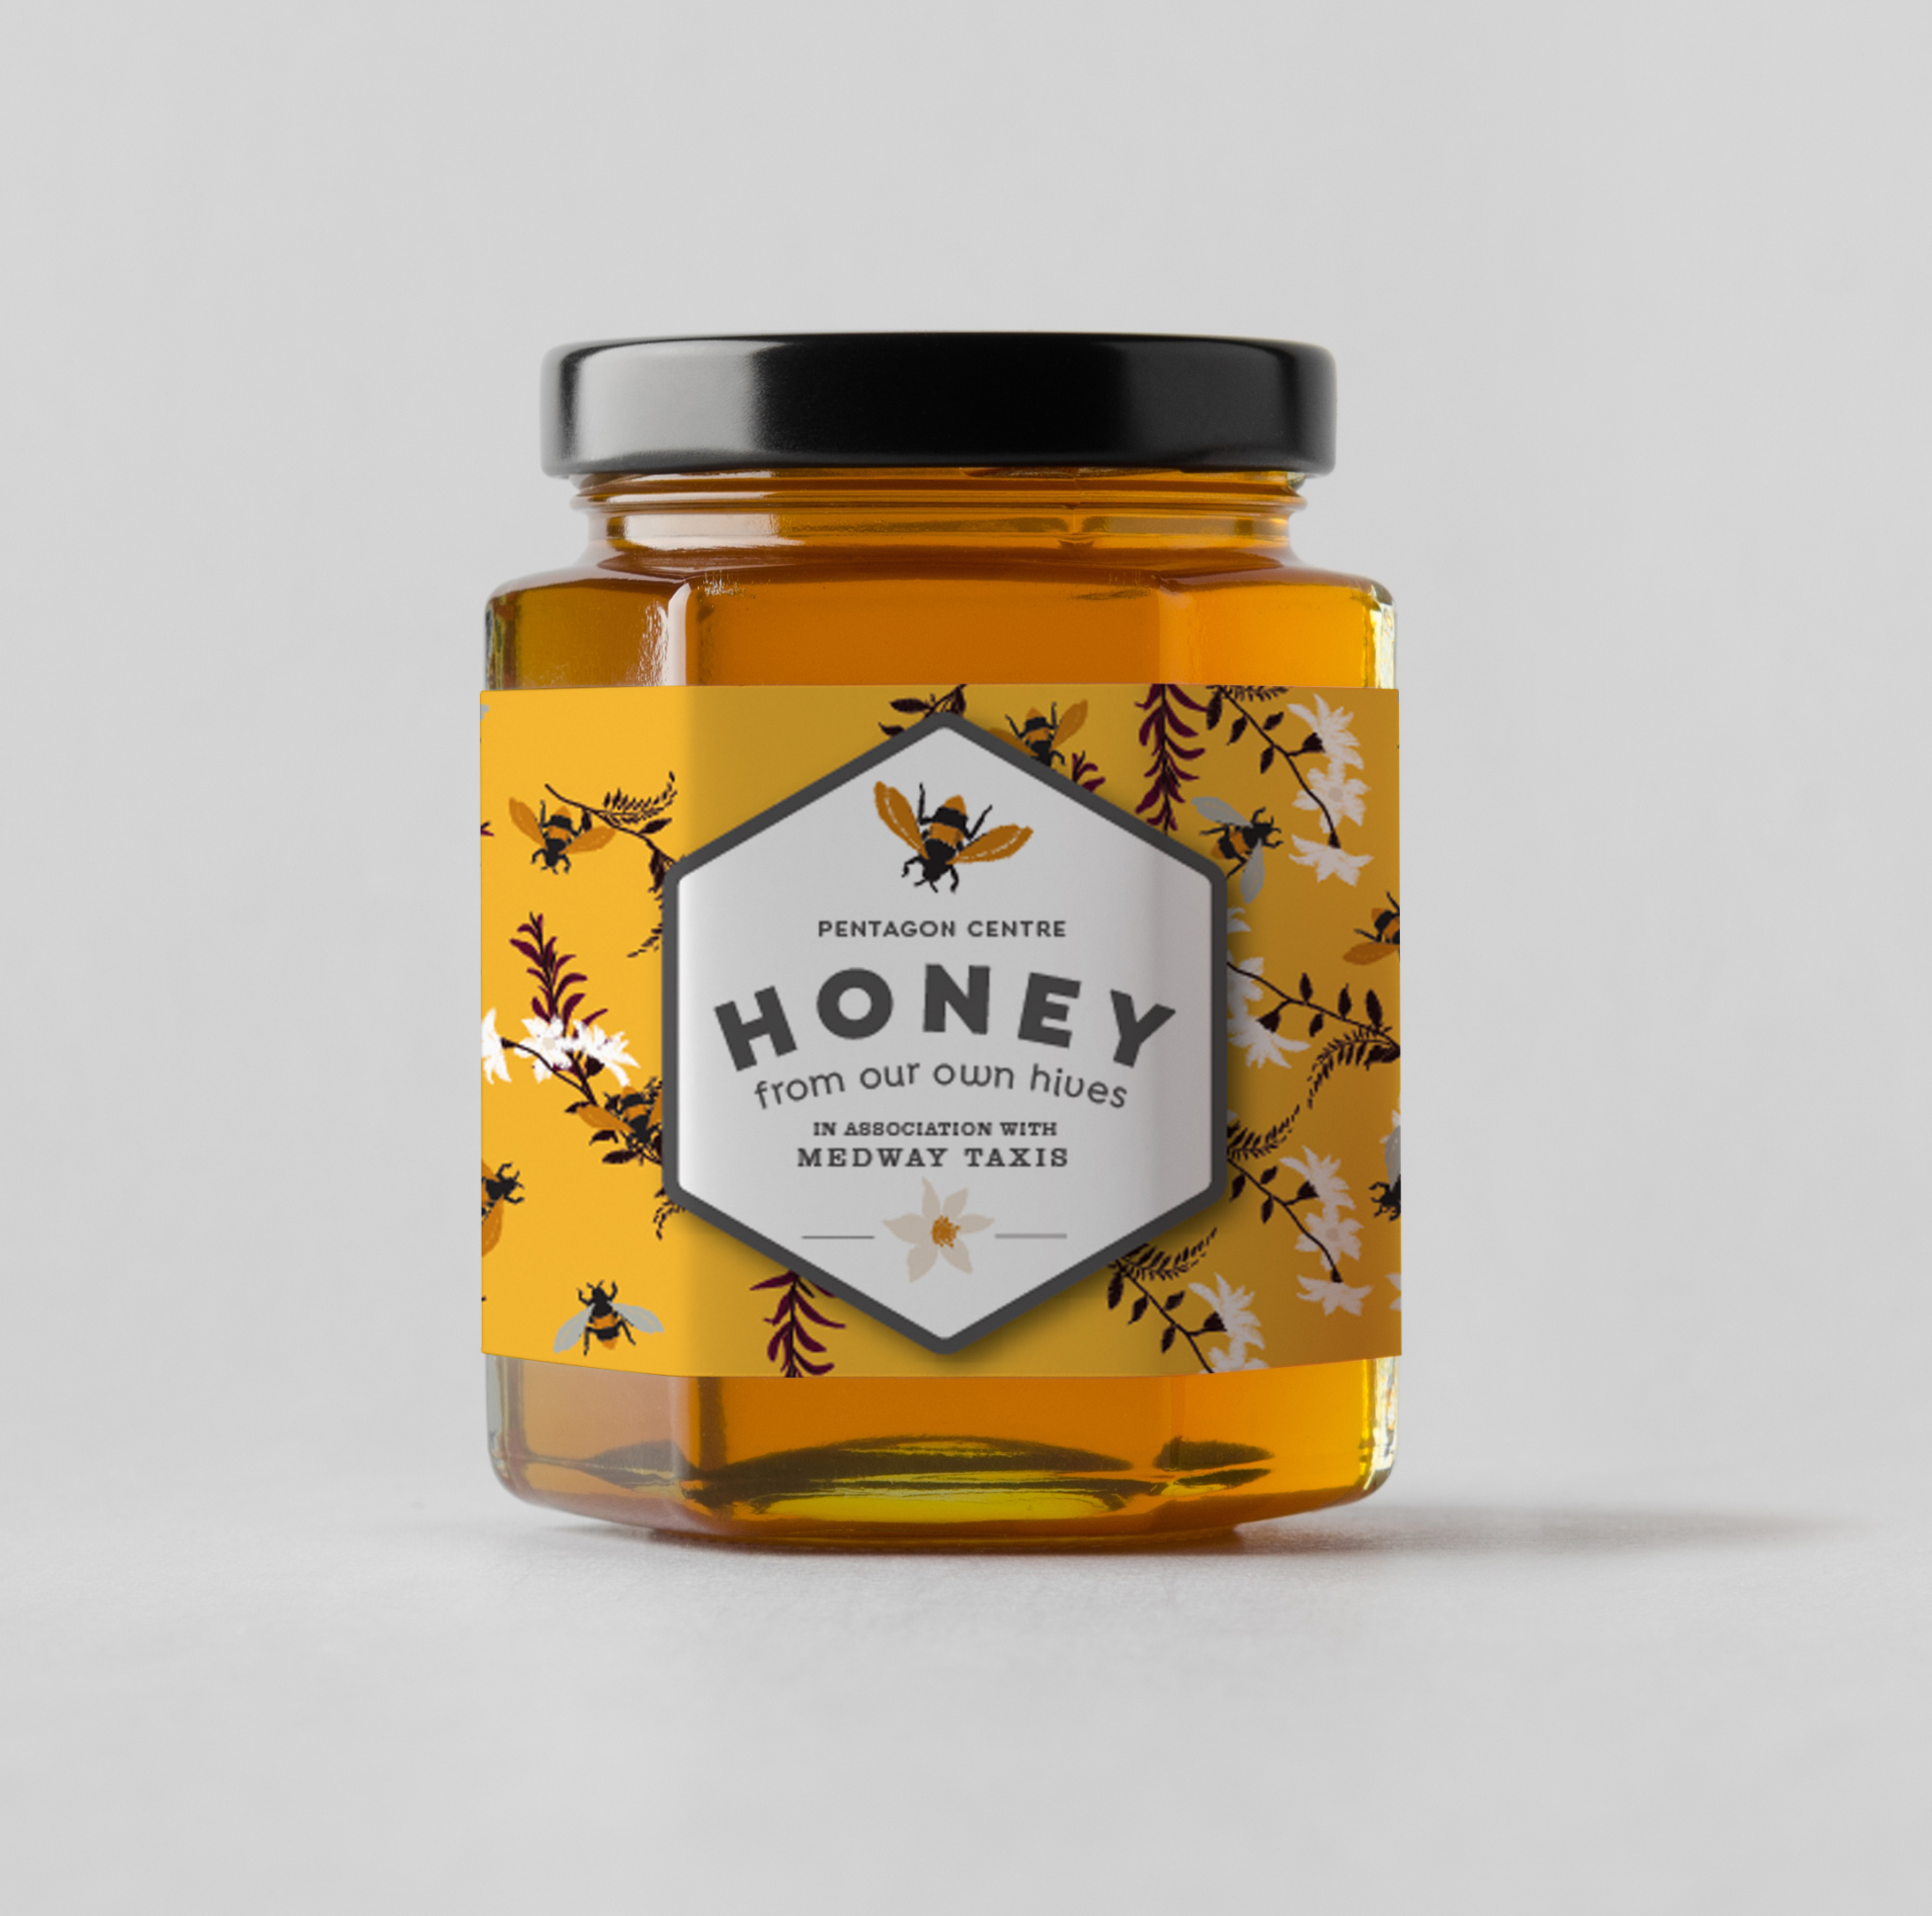 Part of series of honey jar creatives for an enterprise producing honey from hives situated at the top of a shopping centre.